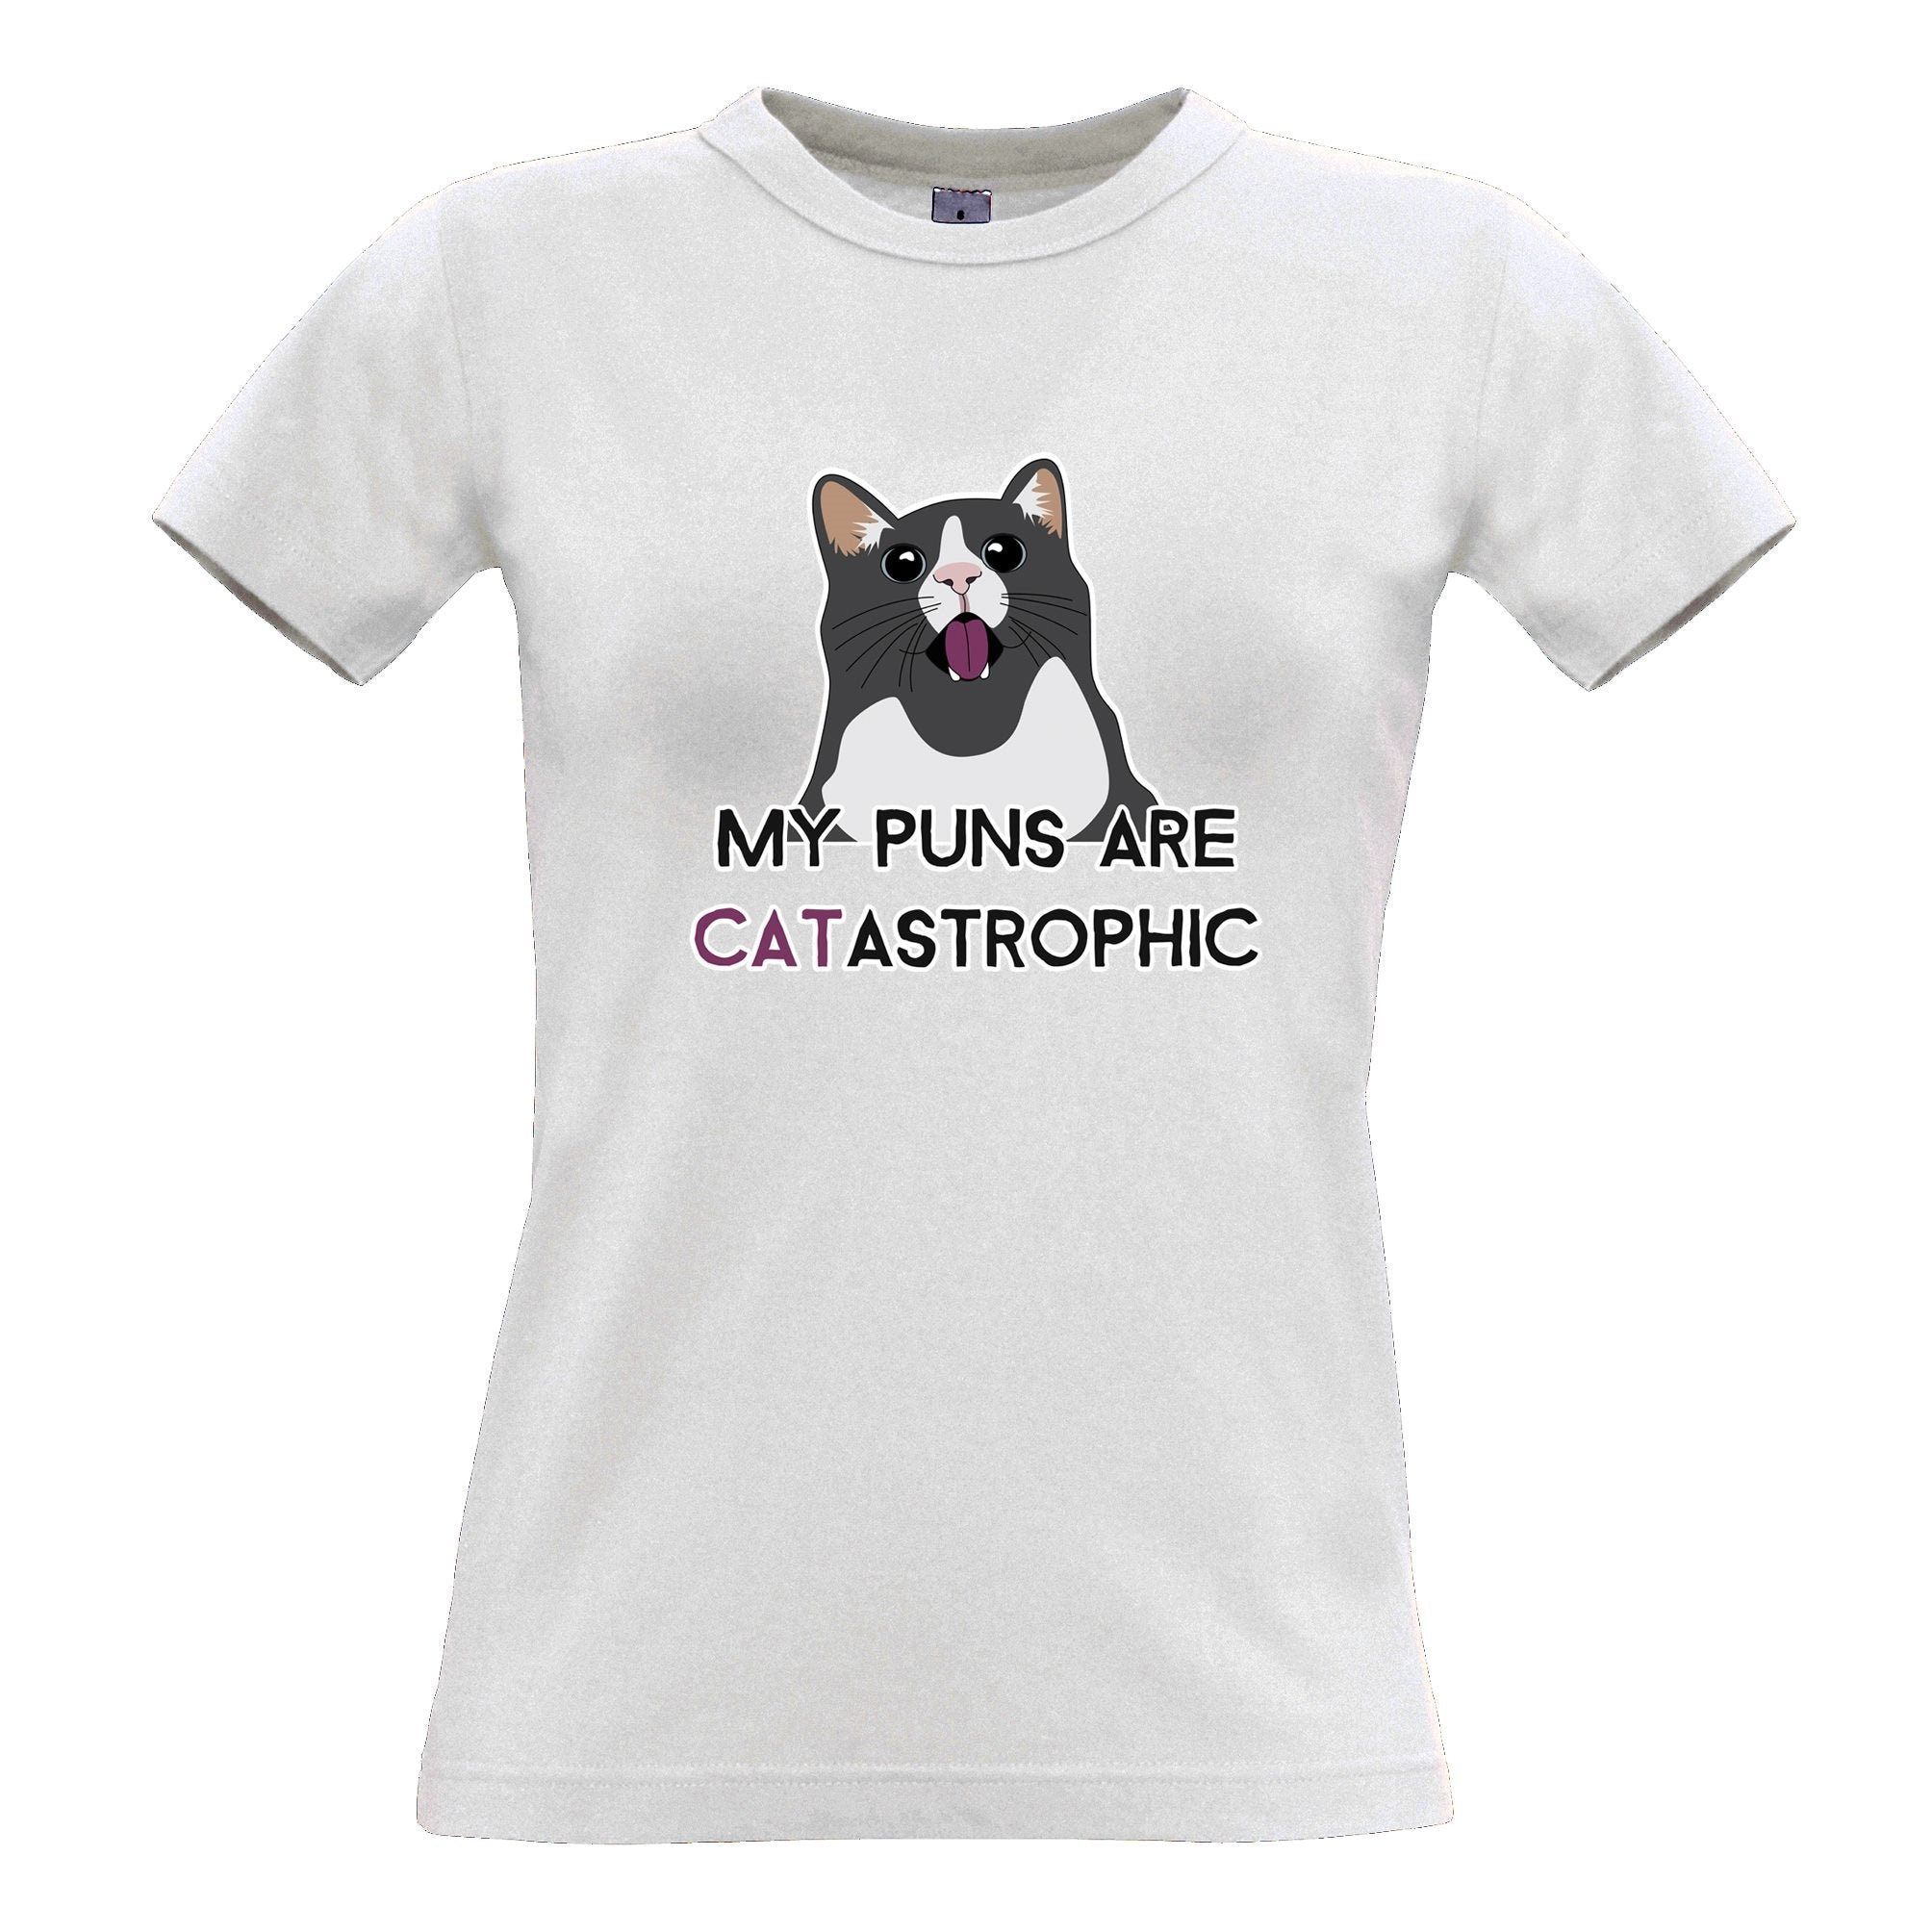 Novelty Cat Womens T Shirt My Puns Are Catastrophic Joke